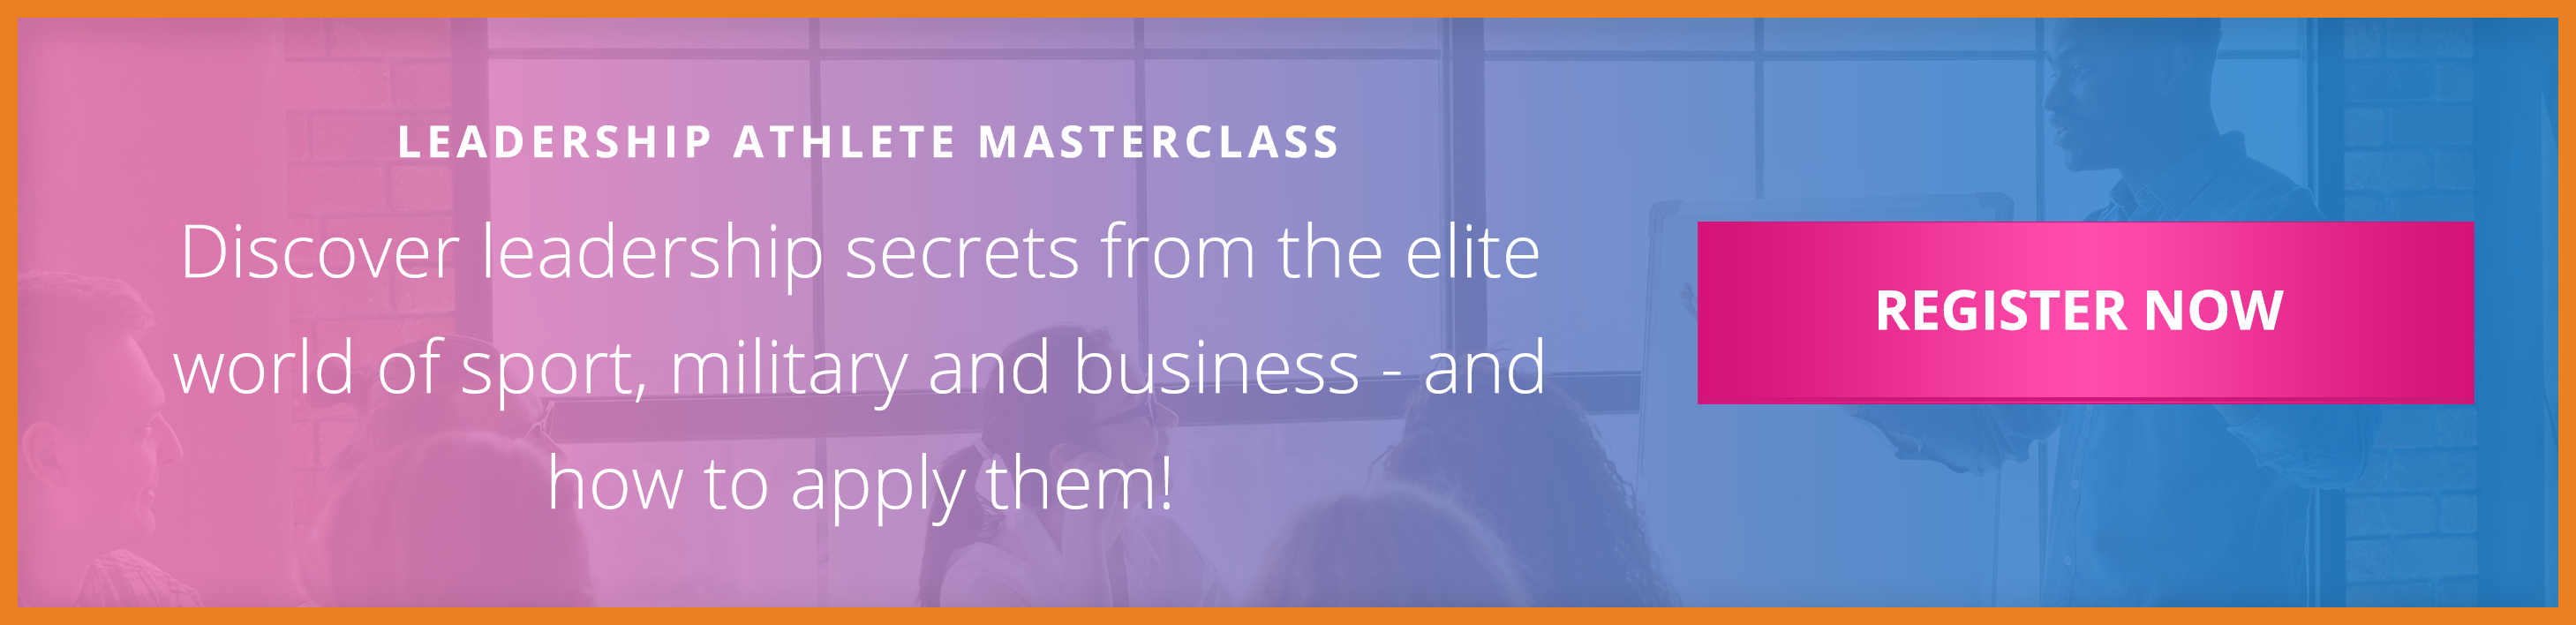 Register Now Leadership Athlete Masterclass CTA